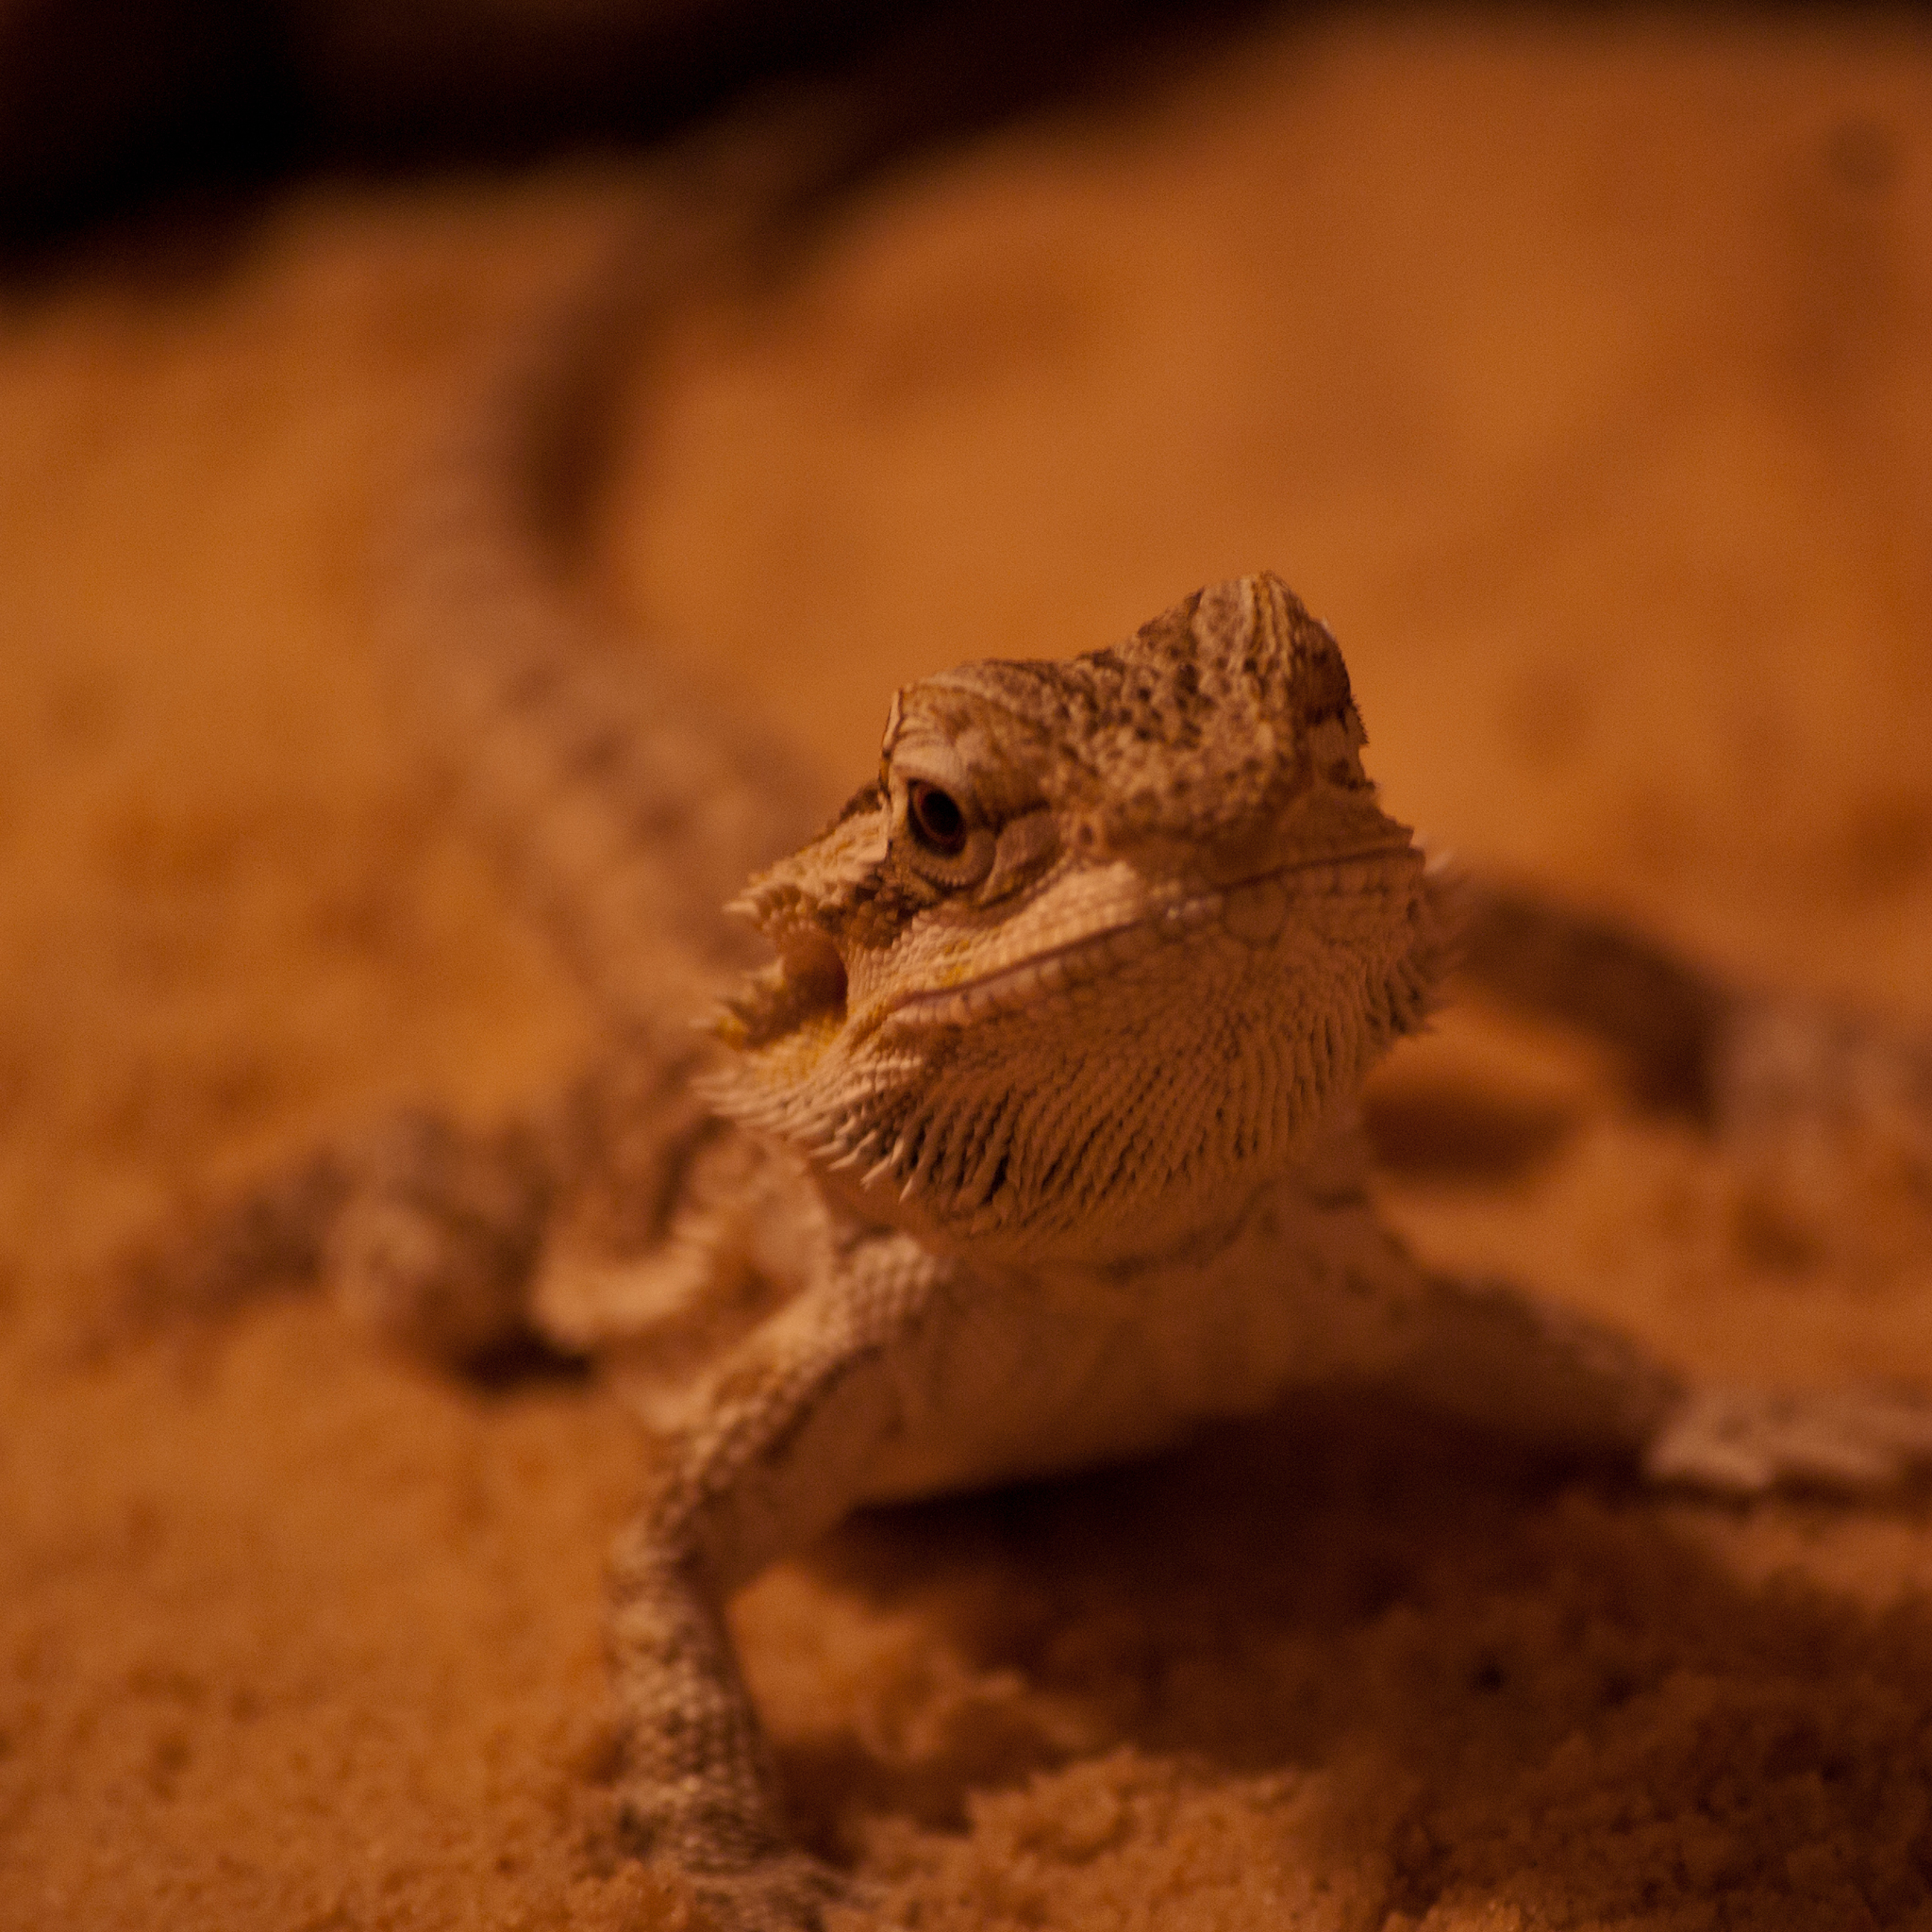 Lezard 3Wallpapers iPad Retina Lezard   iPad Retina